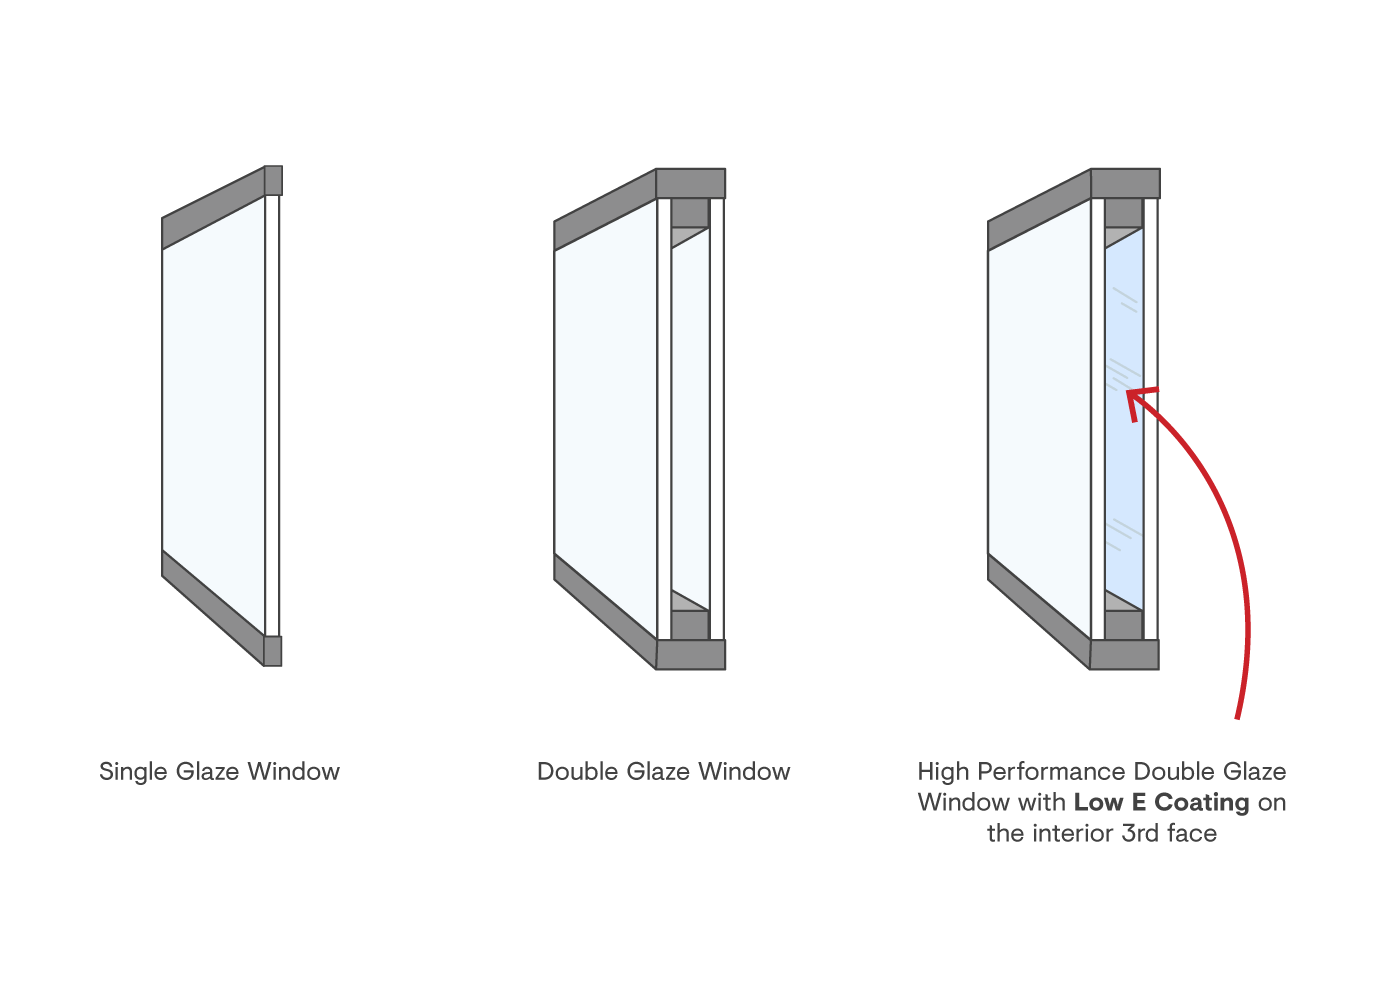 Single, Double and Double with Low E Window Diagram